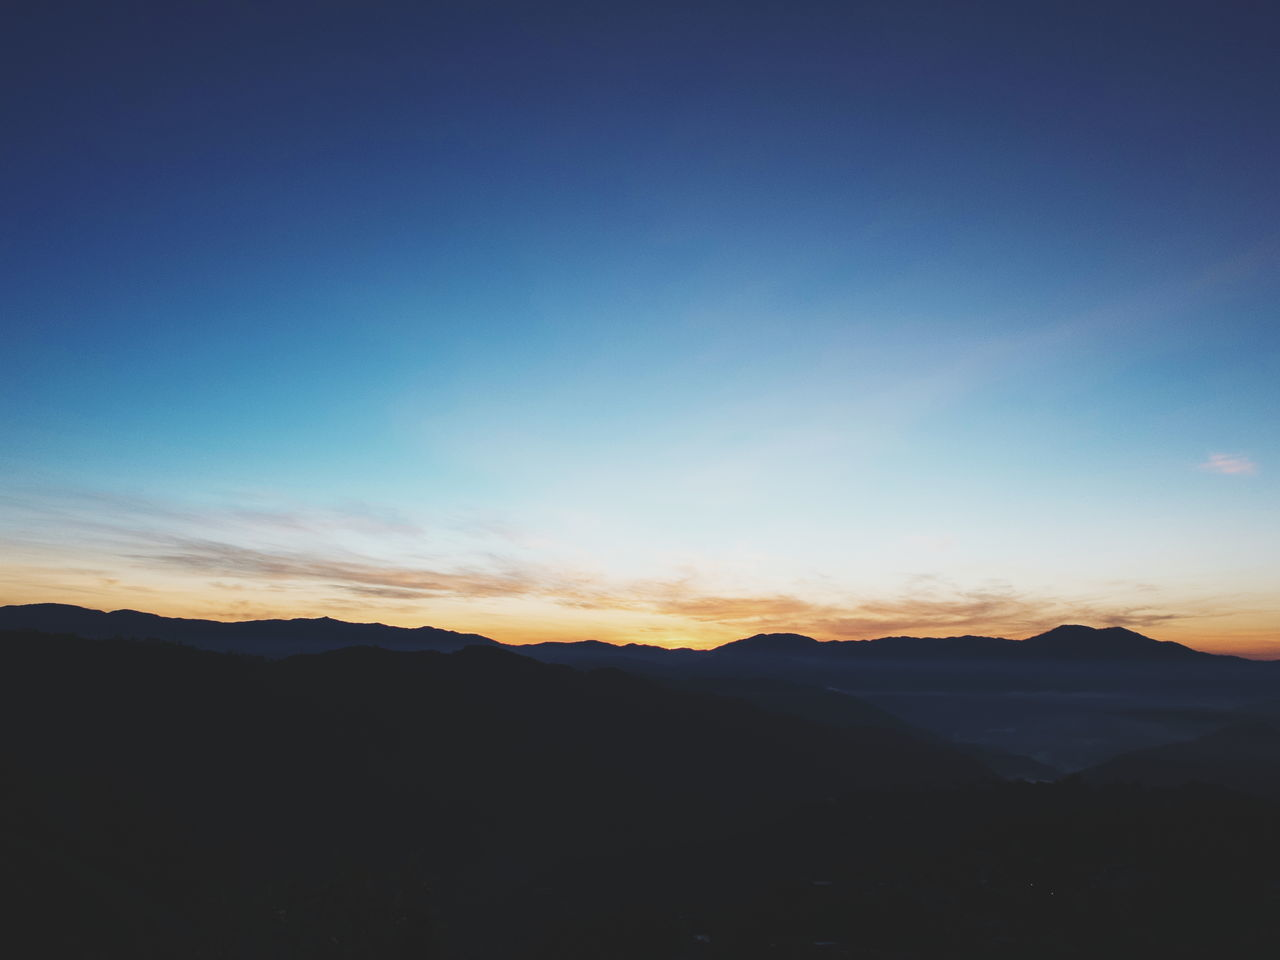 tranquil scene, beauty in nature, tranquility, scenics, nature, mountain, silhouette, copy space, sunset, blue, no people, mountain range, landscape, outdoors, sky, day